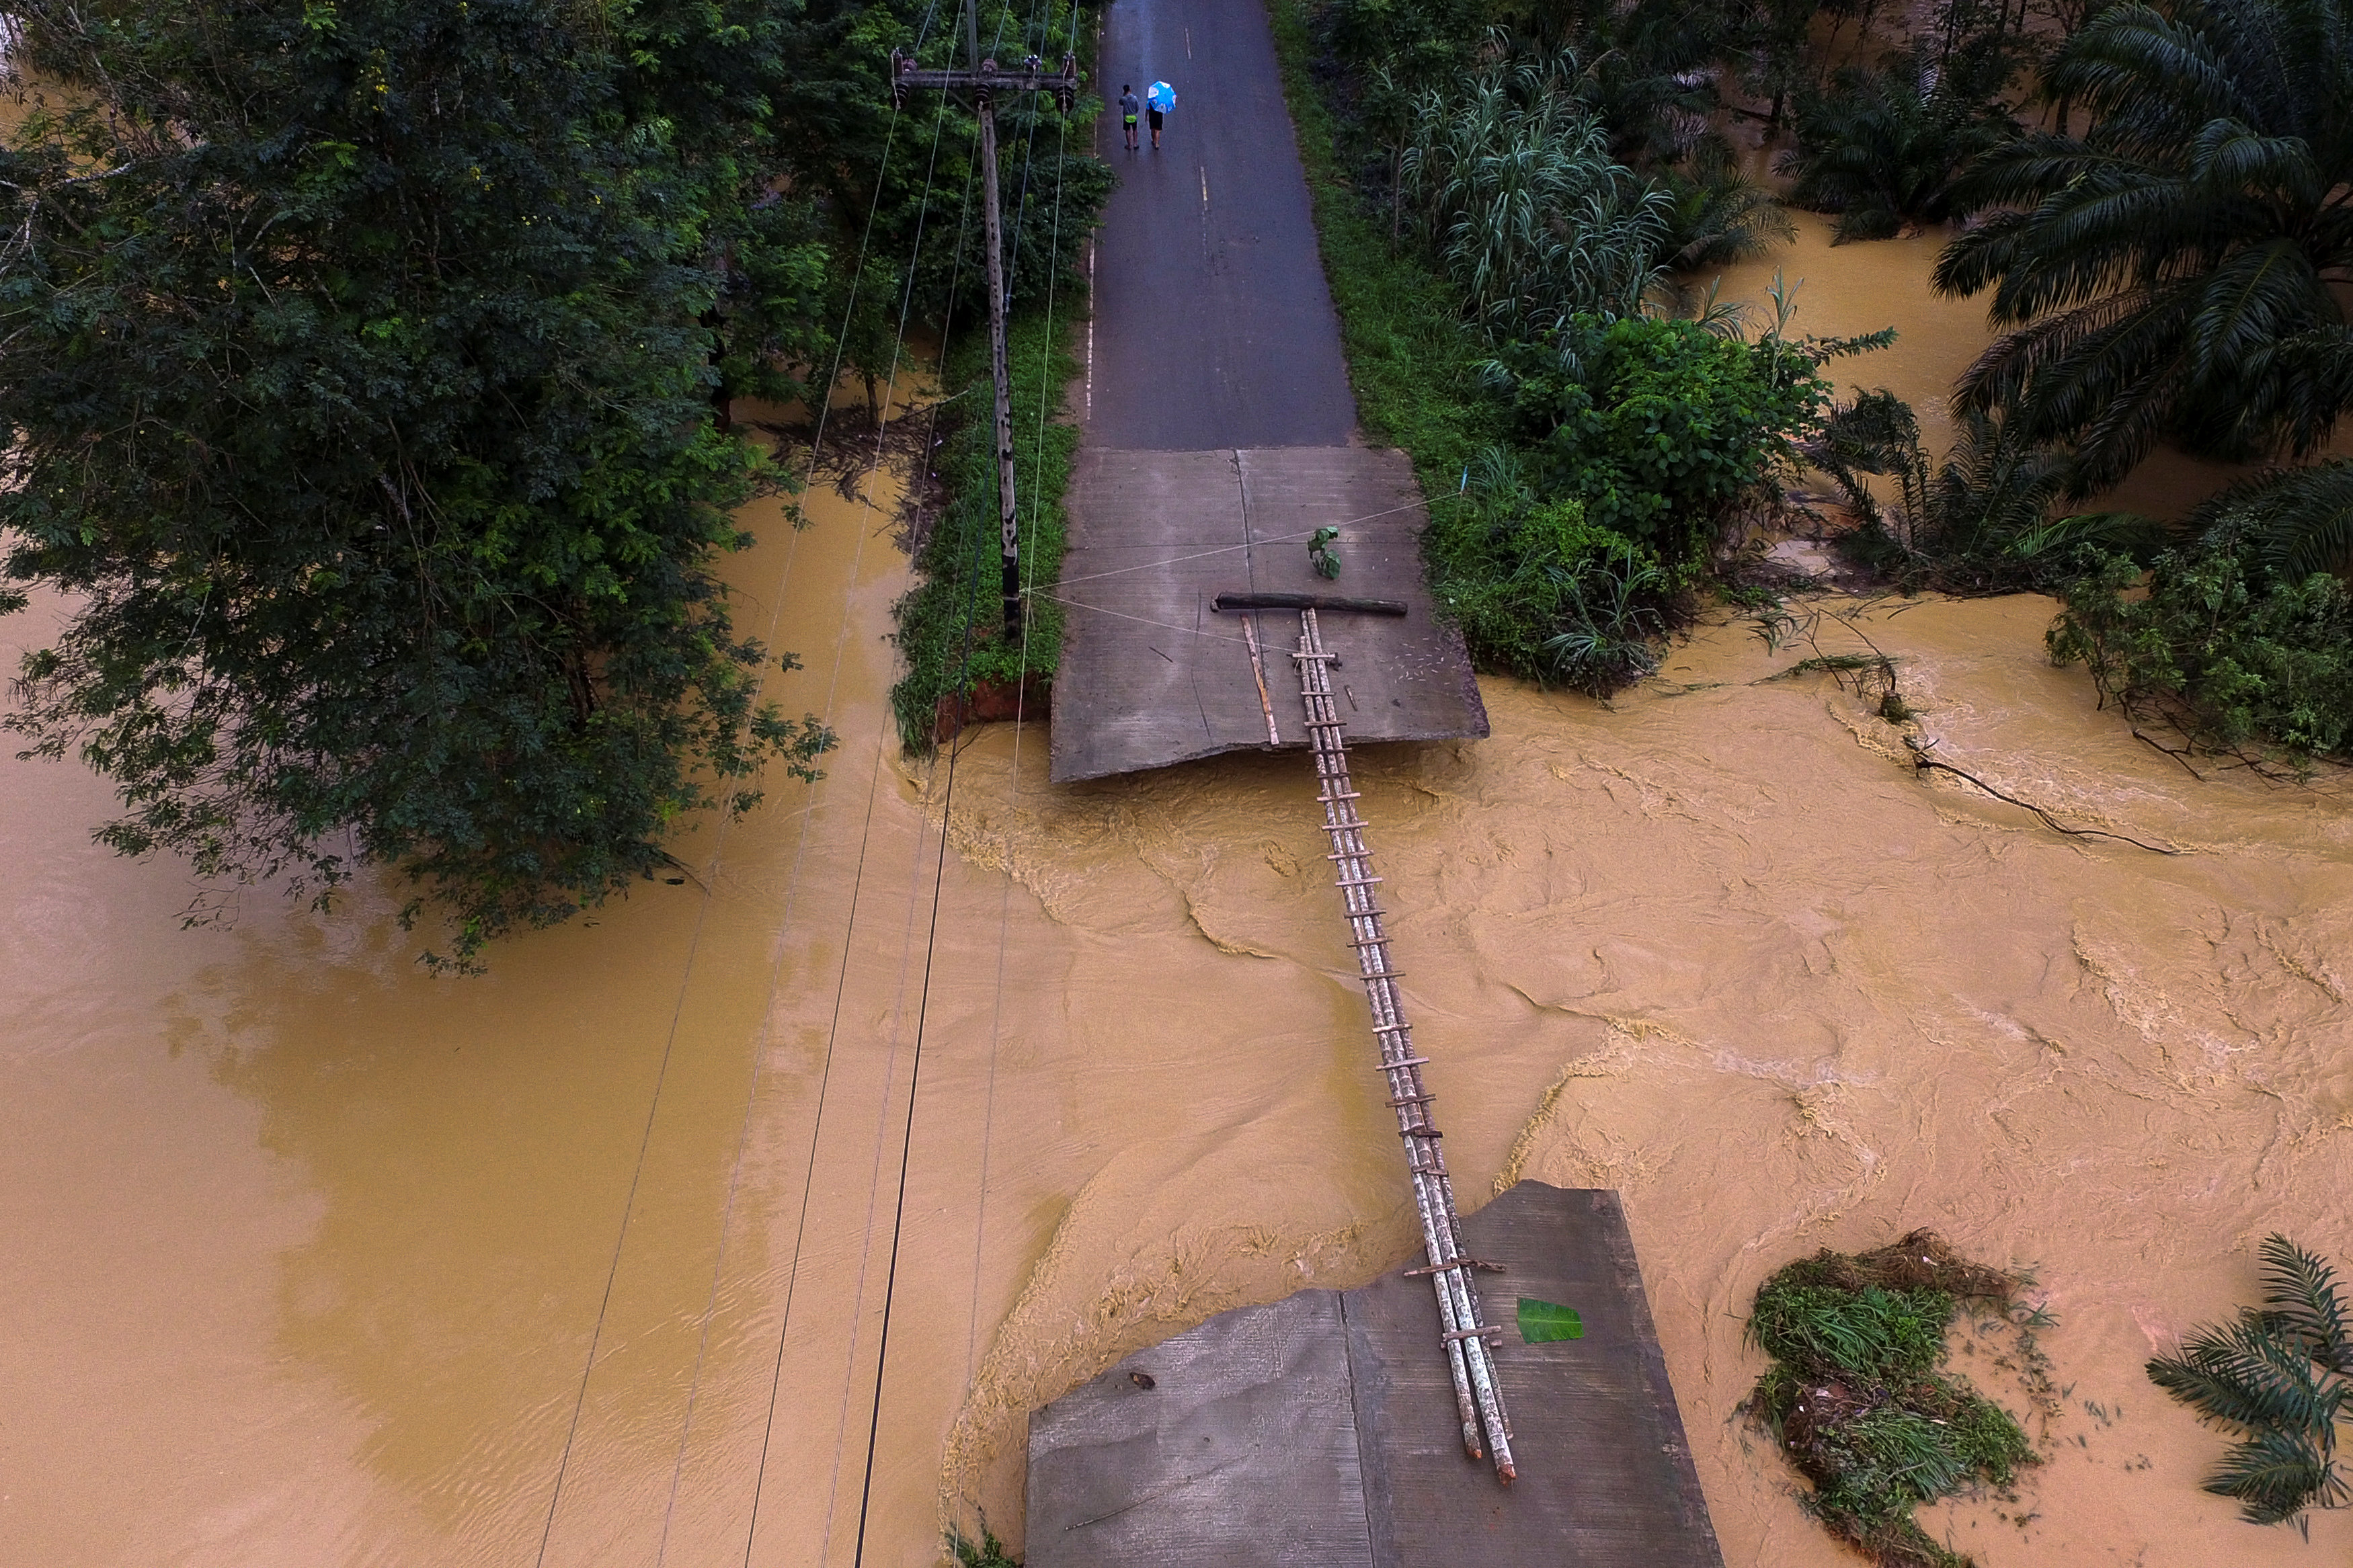 Bridge damaged by floods in Thailand